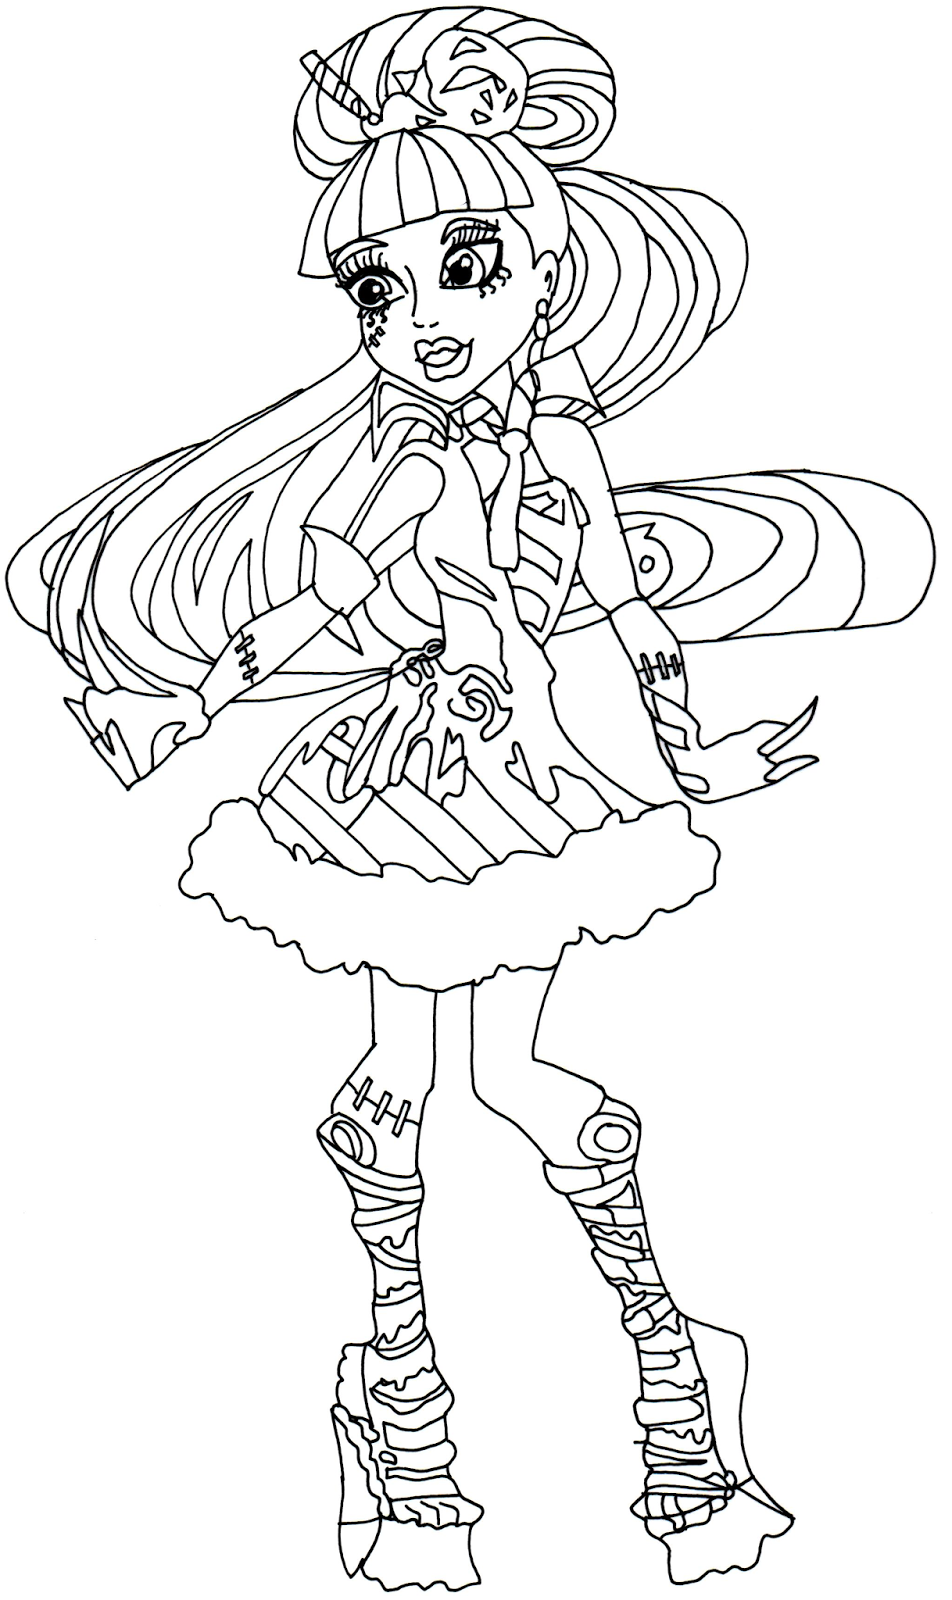 Free printable monster high coloring pages january 2014 for Monster high printables coloring pages